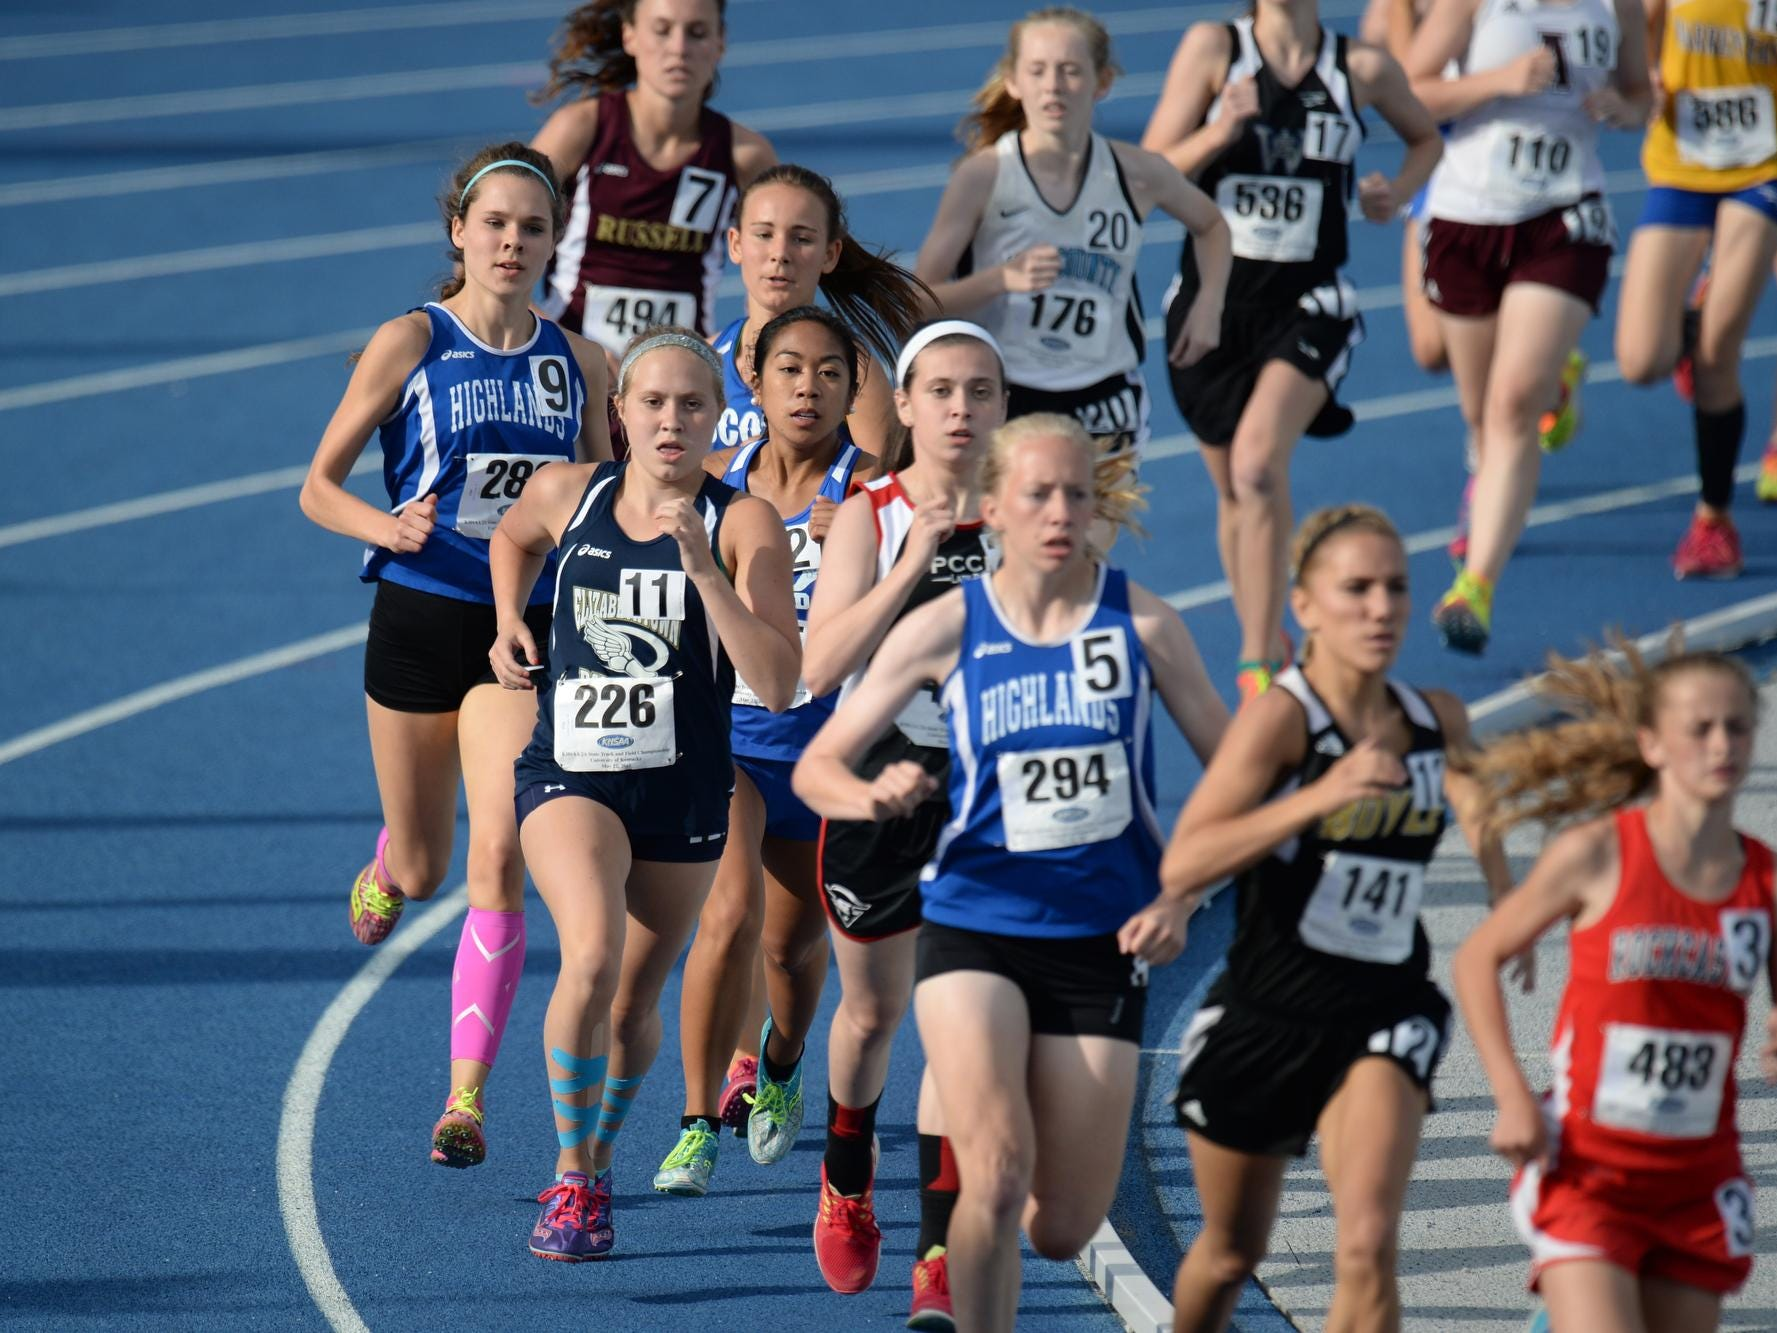 The study notes that some high school athletes spend more than 18 hours a week participating in sporting activities, and many participate in multiple sports at the same time.